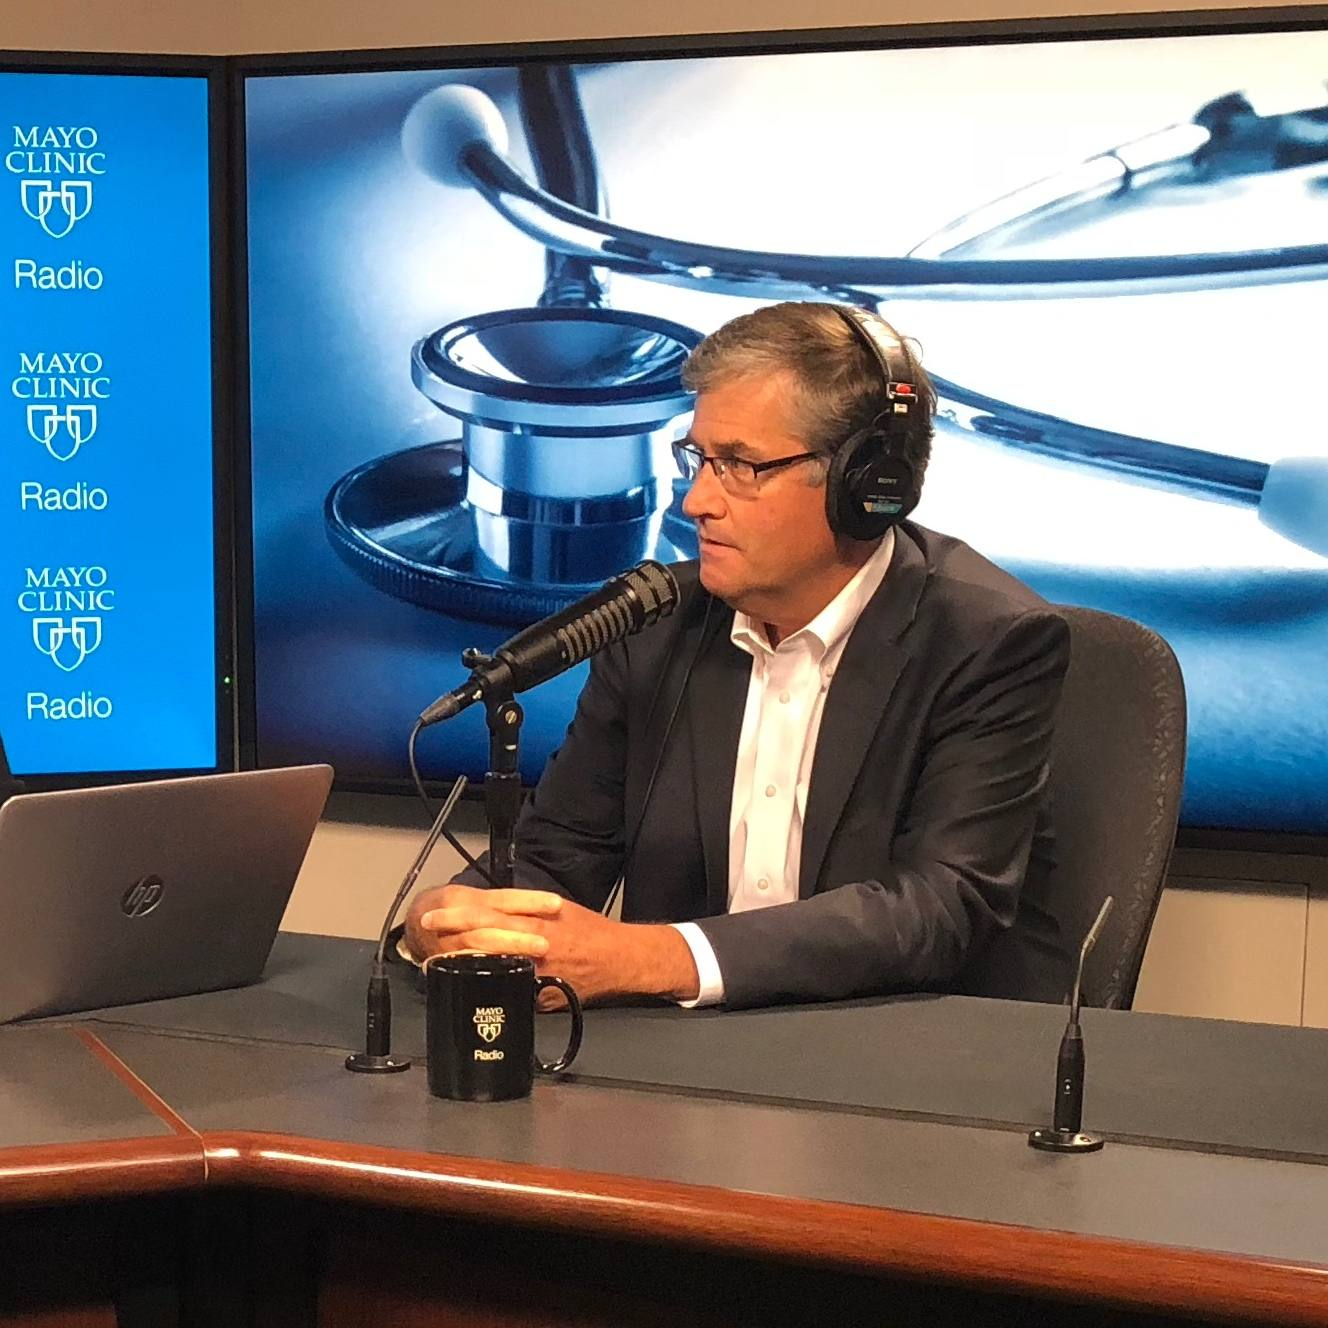 Dr. Robert Trousdale being interviewed on Mayo Clinic Radio